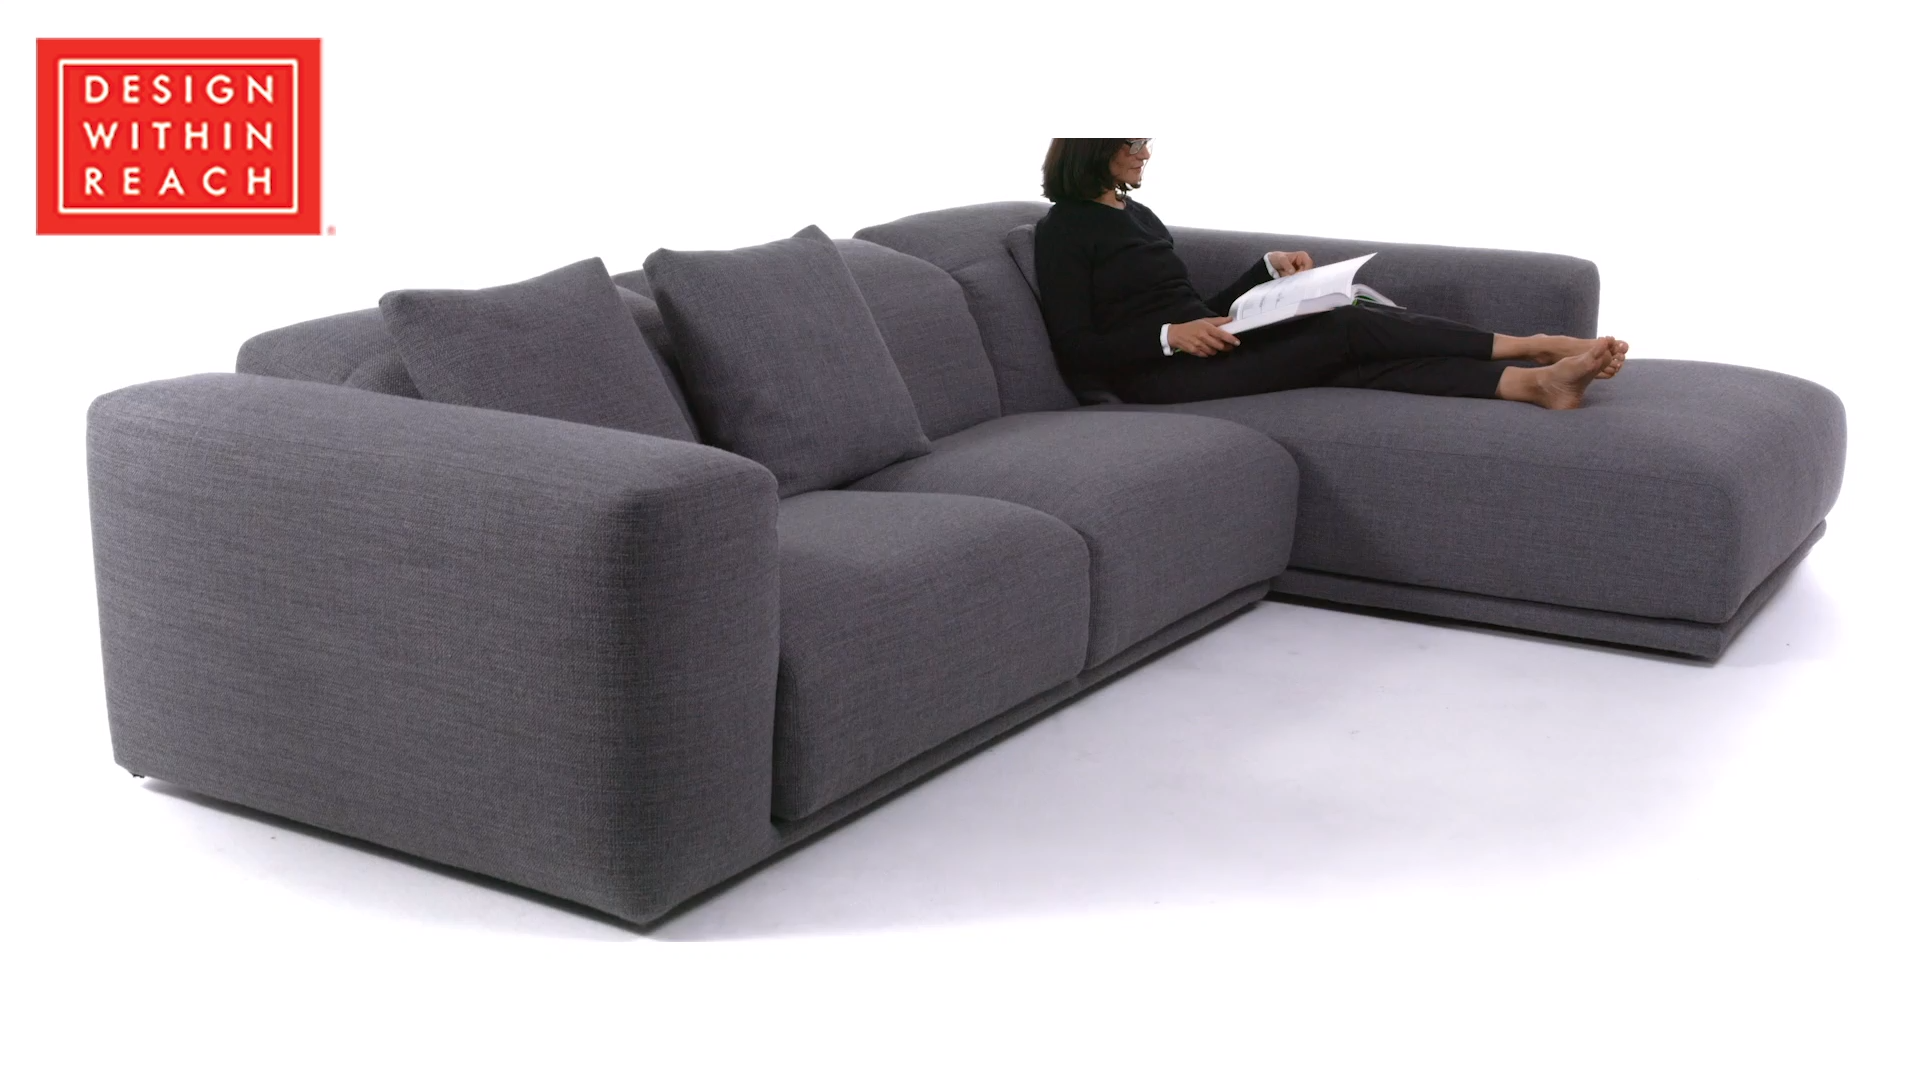 Kelston Sectional Design Within Reach Video Video In 2020 Corner Sofa Design Sectional Sofa With Chaise Living Room Sofa Design